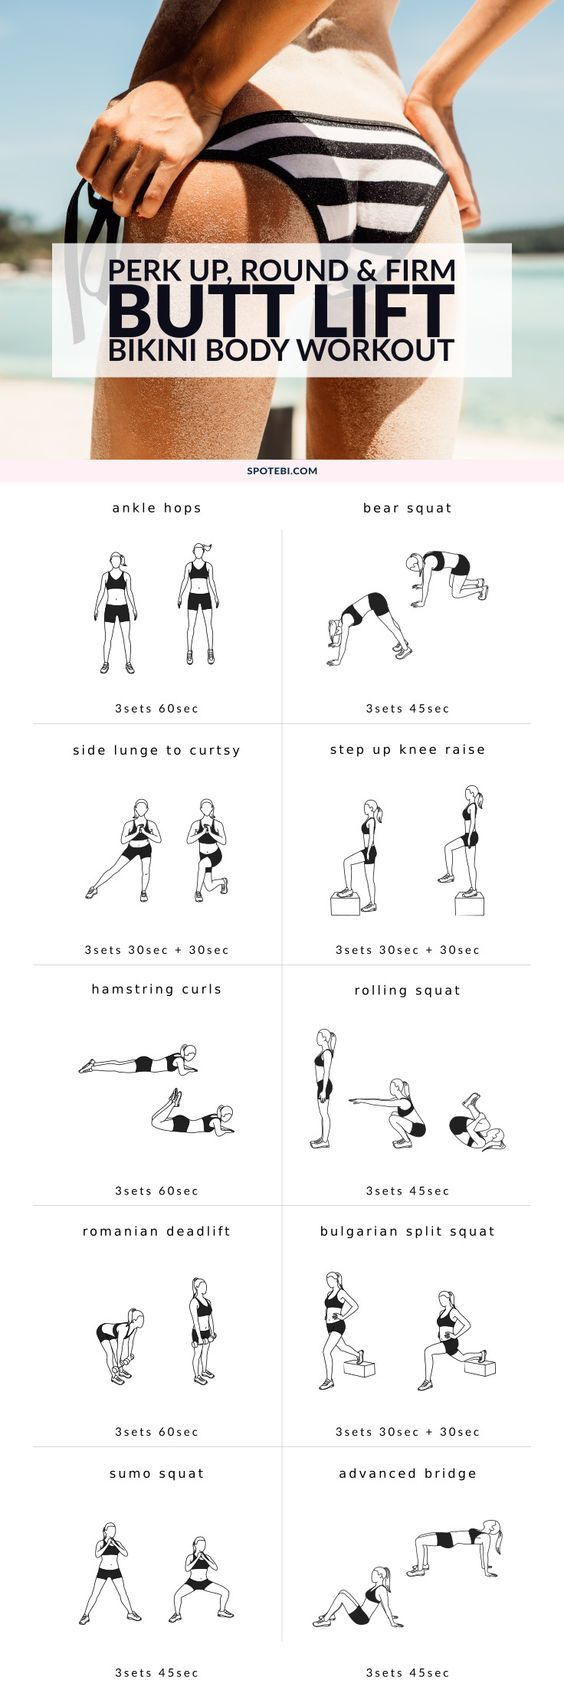 Perk up, round and firm your glutes with this butt lift workout for women. A 30 minute routine designed to target and activate your muscles and make your backside look good from every angle! http://www.spotebi.com/workout-routines/butt-lift-bikini-body-workout/